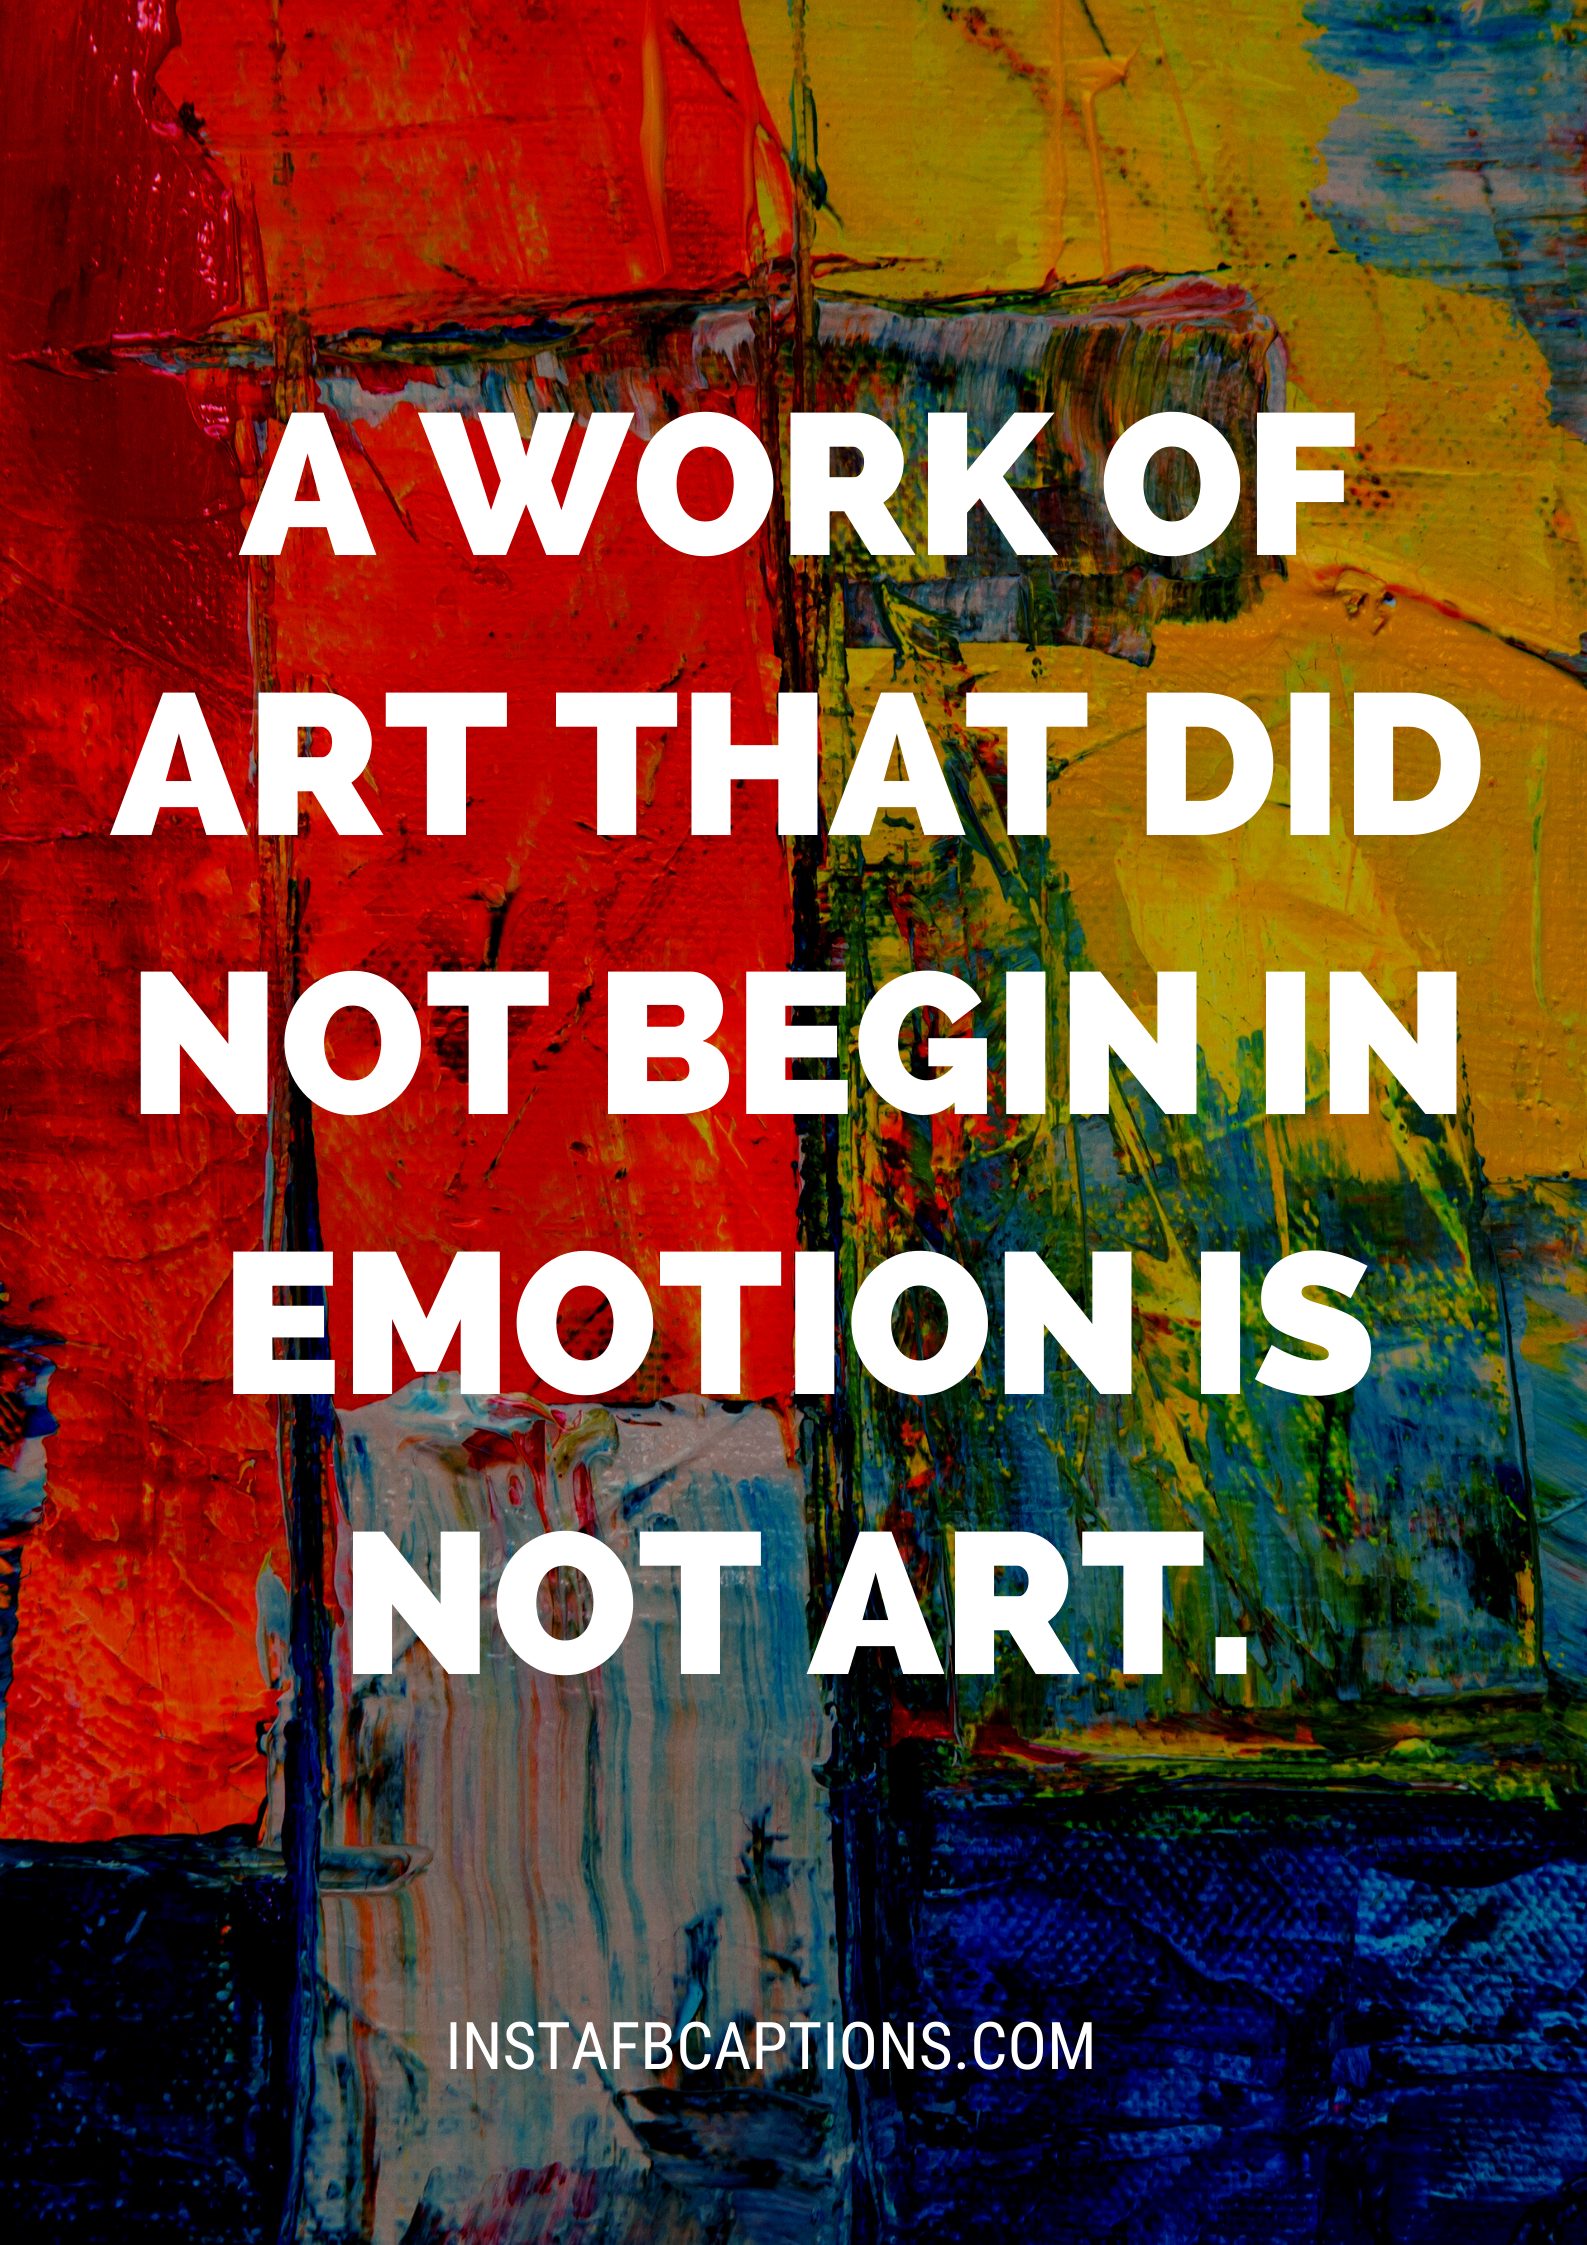 Abstract Quotes To Use For Painting Pictures In 2021  - Abstract Quotes to Use for Painting Pictures in 2021 - PAINTING Instagram Captions for Hand Drawn Pictures in 2021